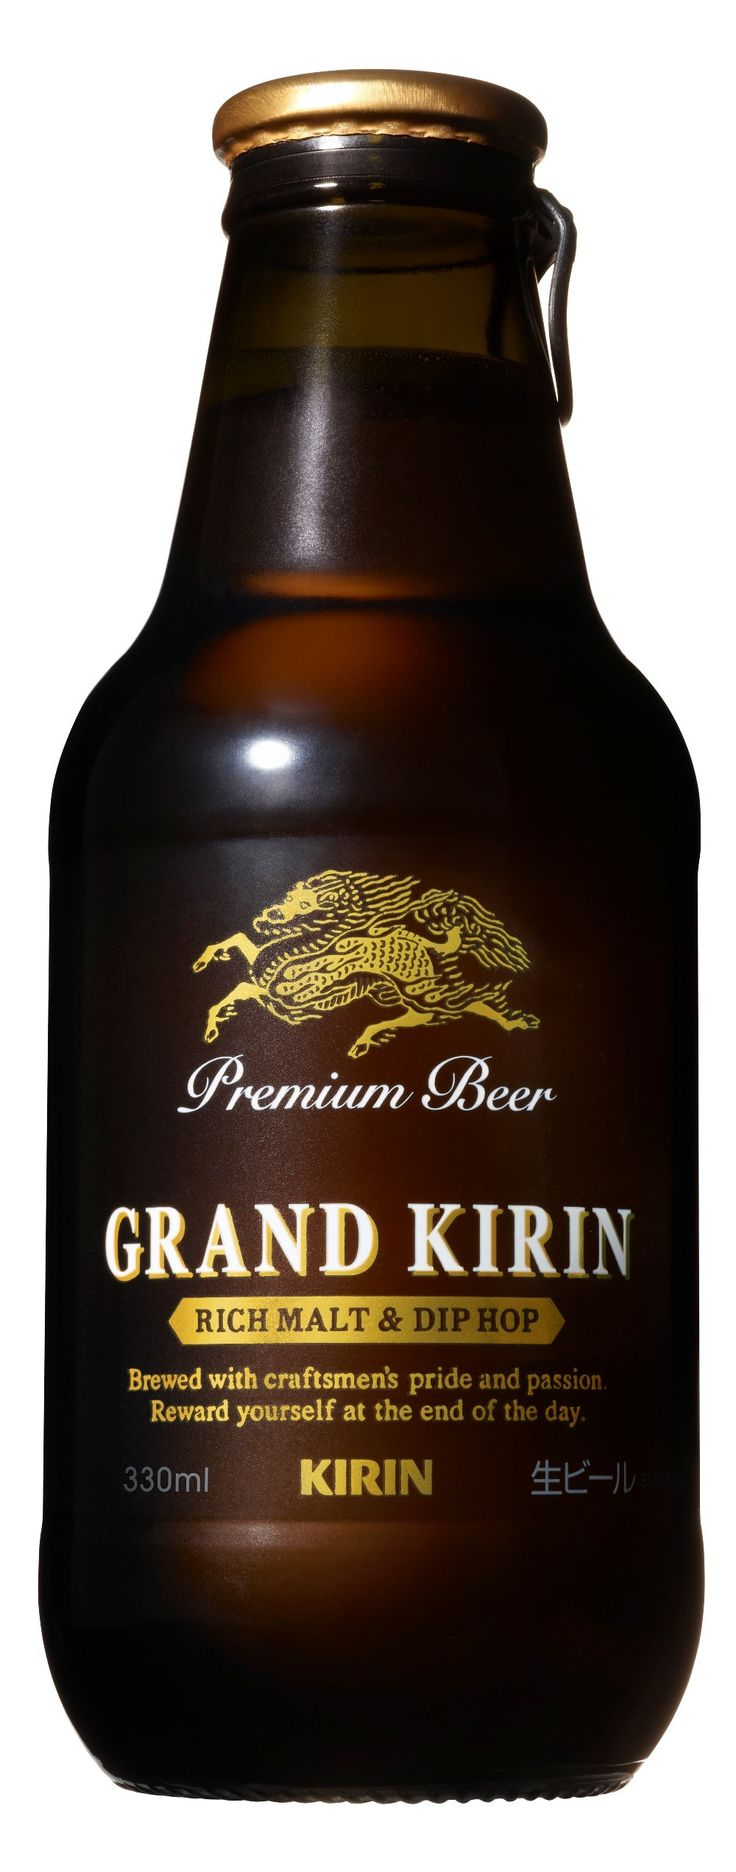 "the 'chug'a'mug lives! ""Premium Beer「GRAND KIRIN グランド・キリン」RICH MALT & DIP HOP"" by KIRIN キリン"